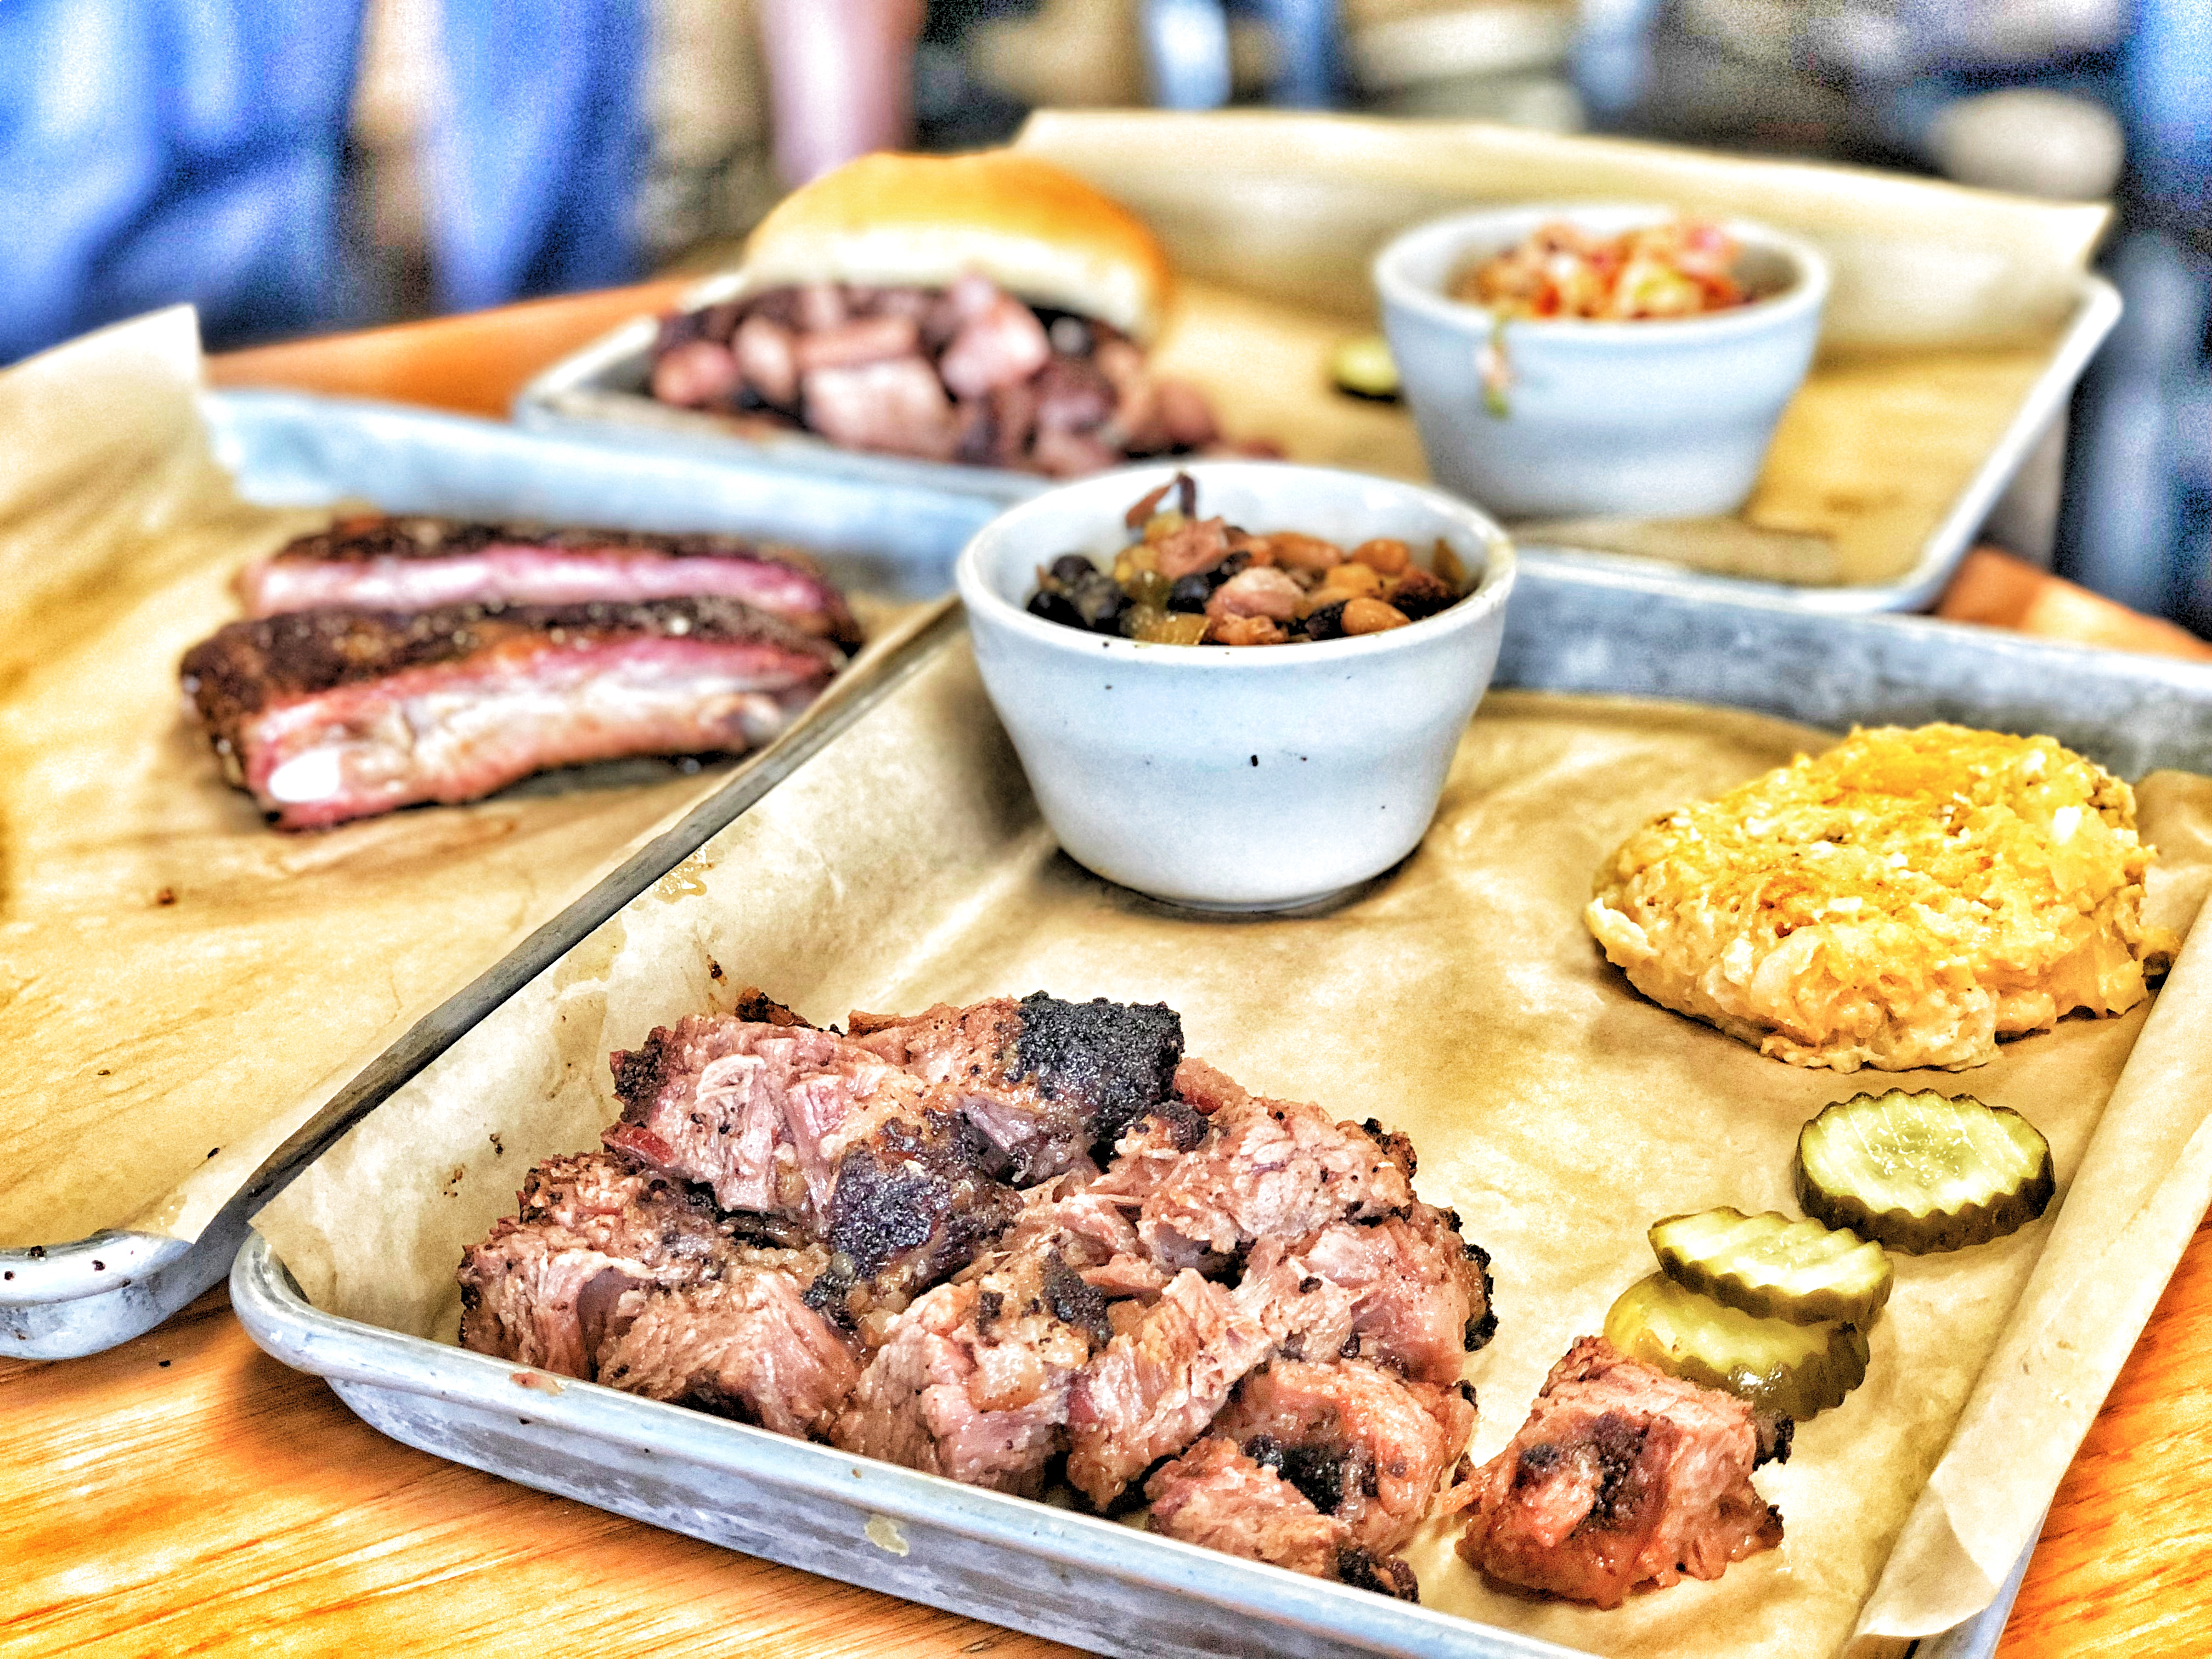 BBQ with sides at Mulberry BBQ